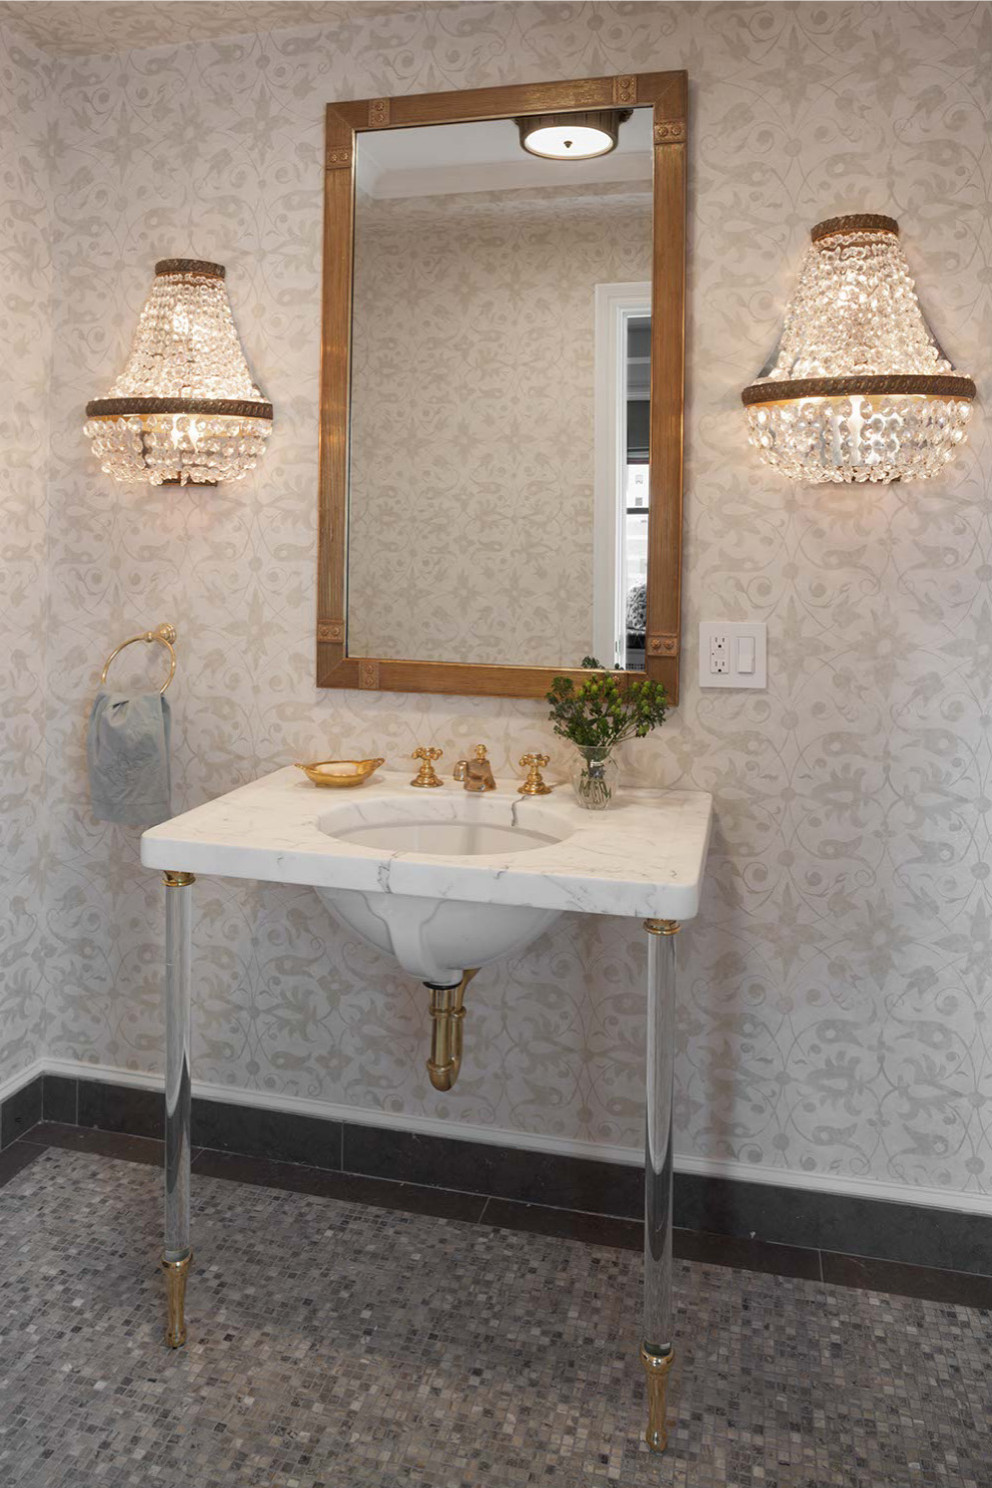 Duplex Apartment Powder Room